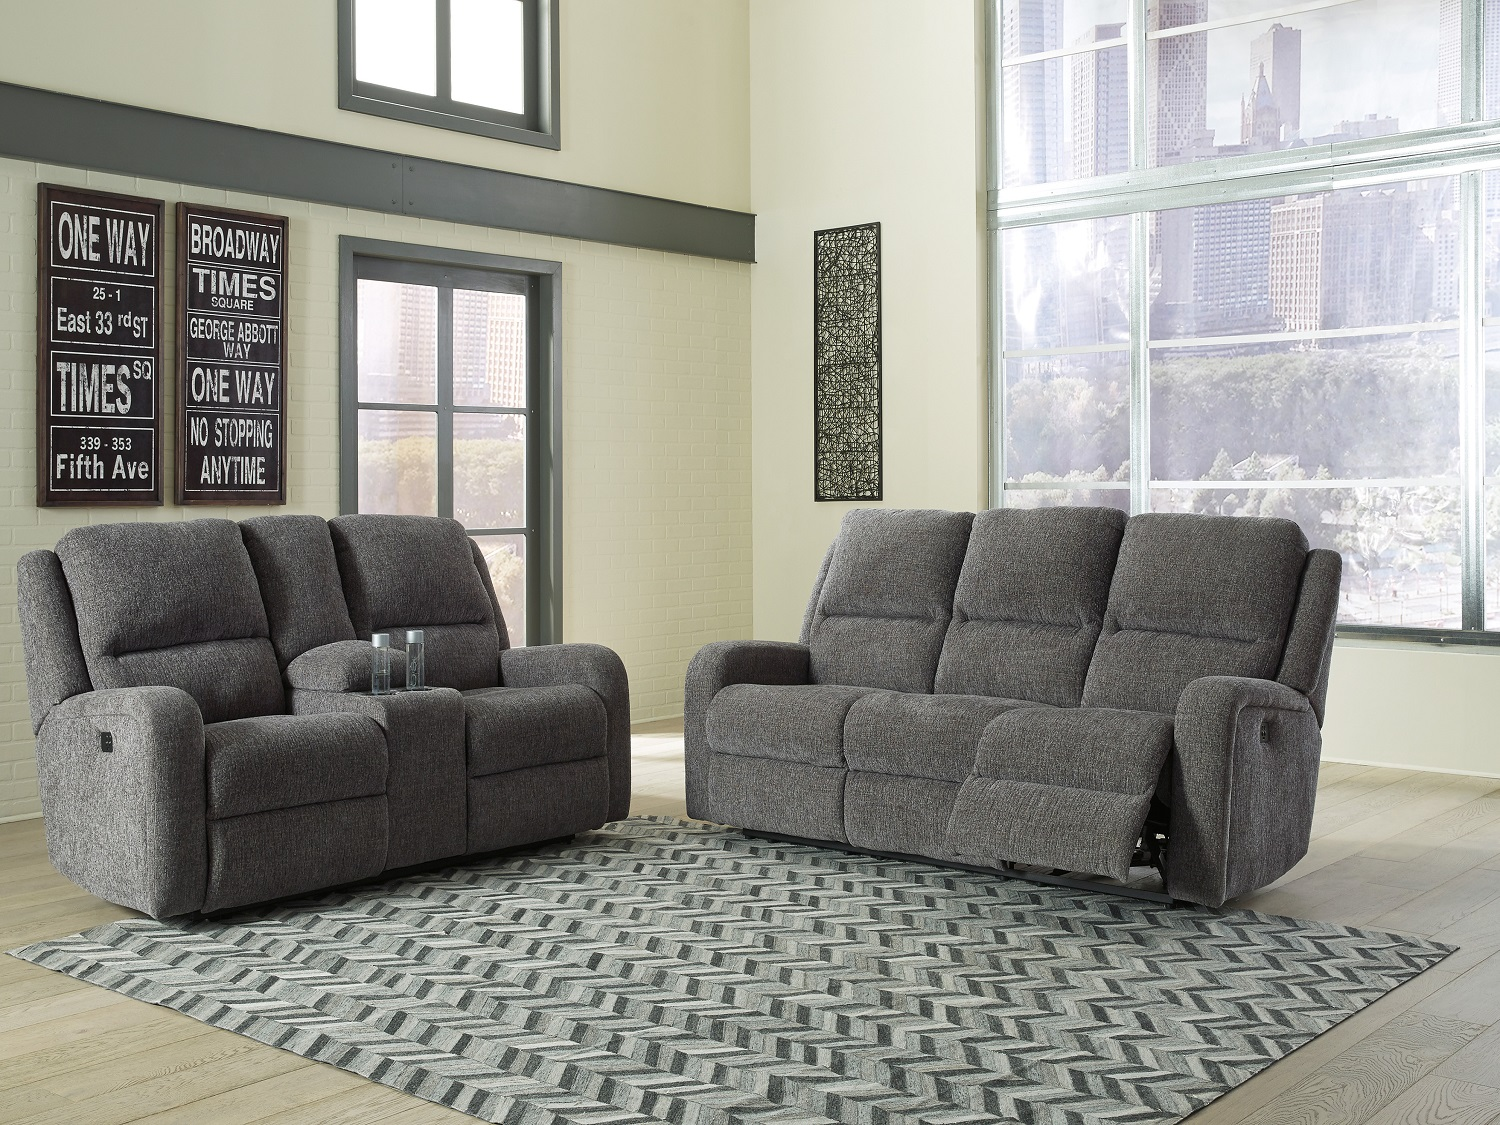 Krismen, 781, Recliners by Midha Furniture to Brampton, Mississauga, Etobicoke, Toronto, Scraborough, Caledon, Oakville, Markham, Ajax, Pickering, Oshawa, Richmondhill, Kitchener, Hamilton and GTA area